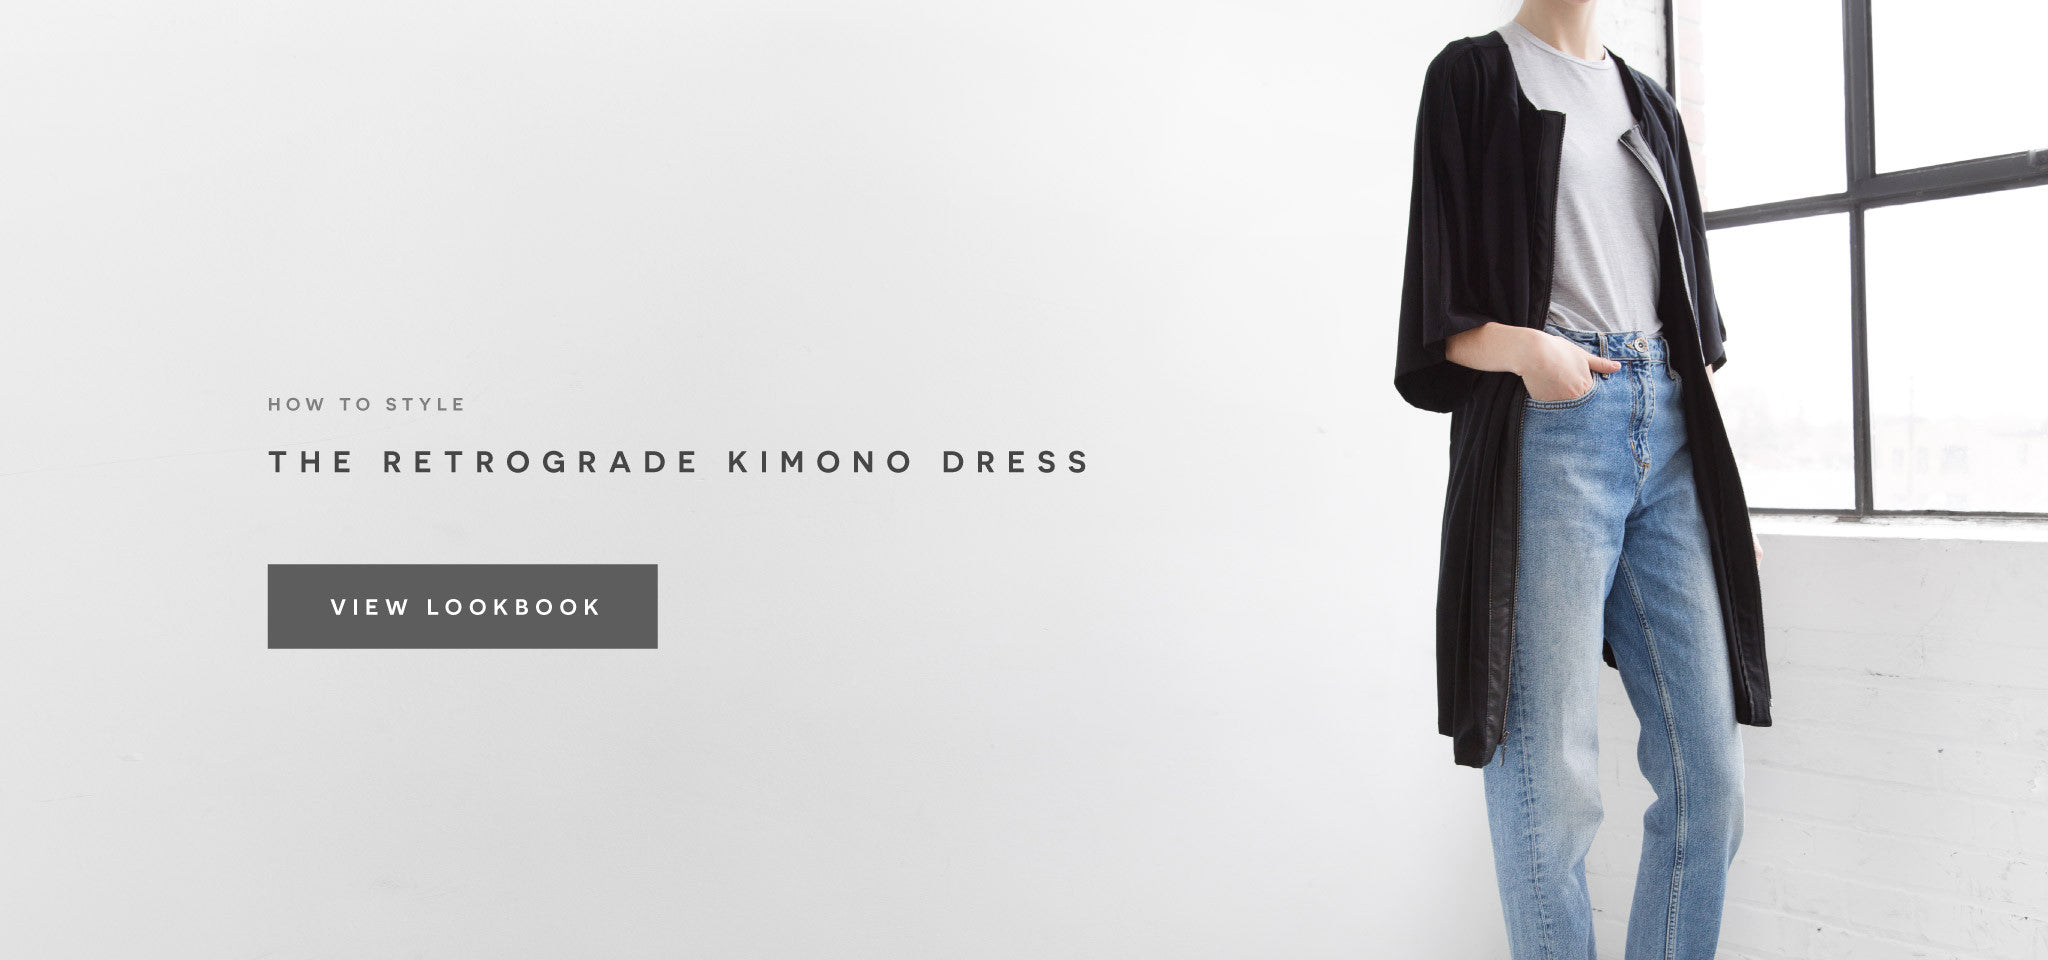 how to style a kimono for a casual day look or for a professional office look